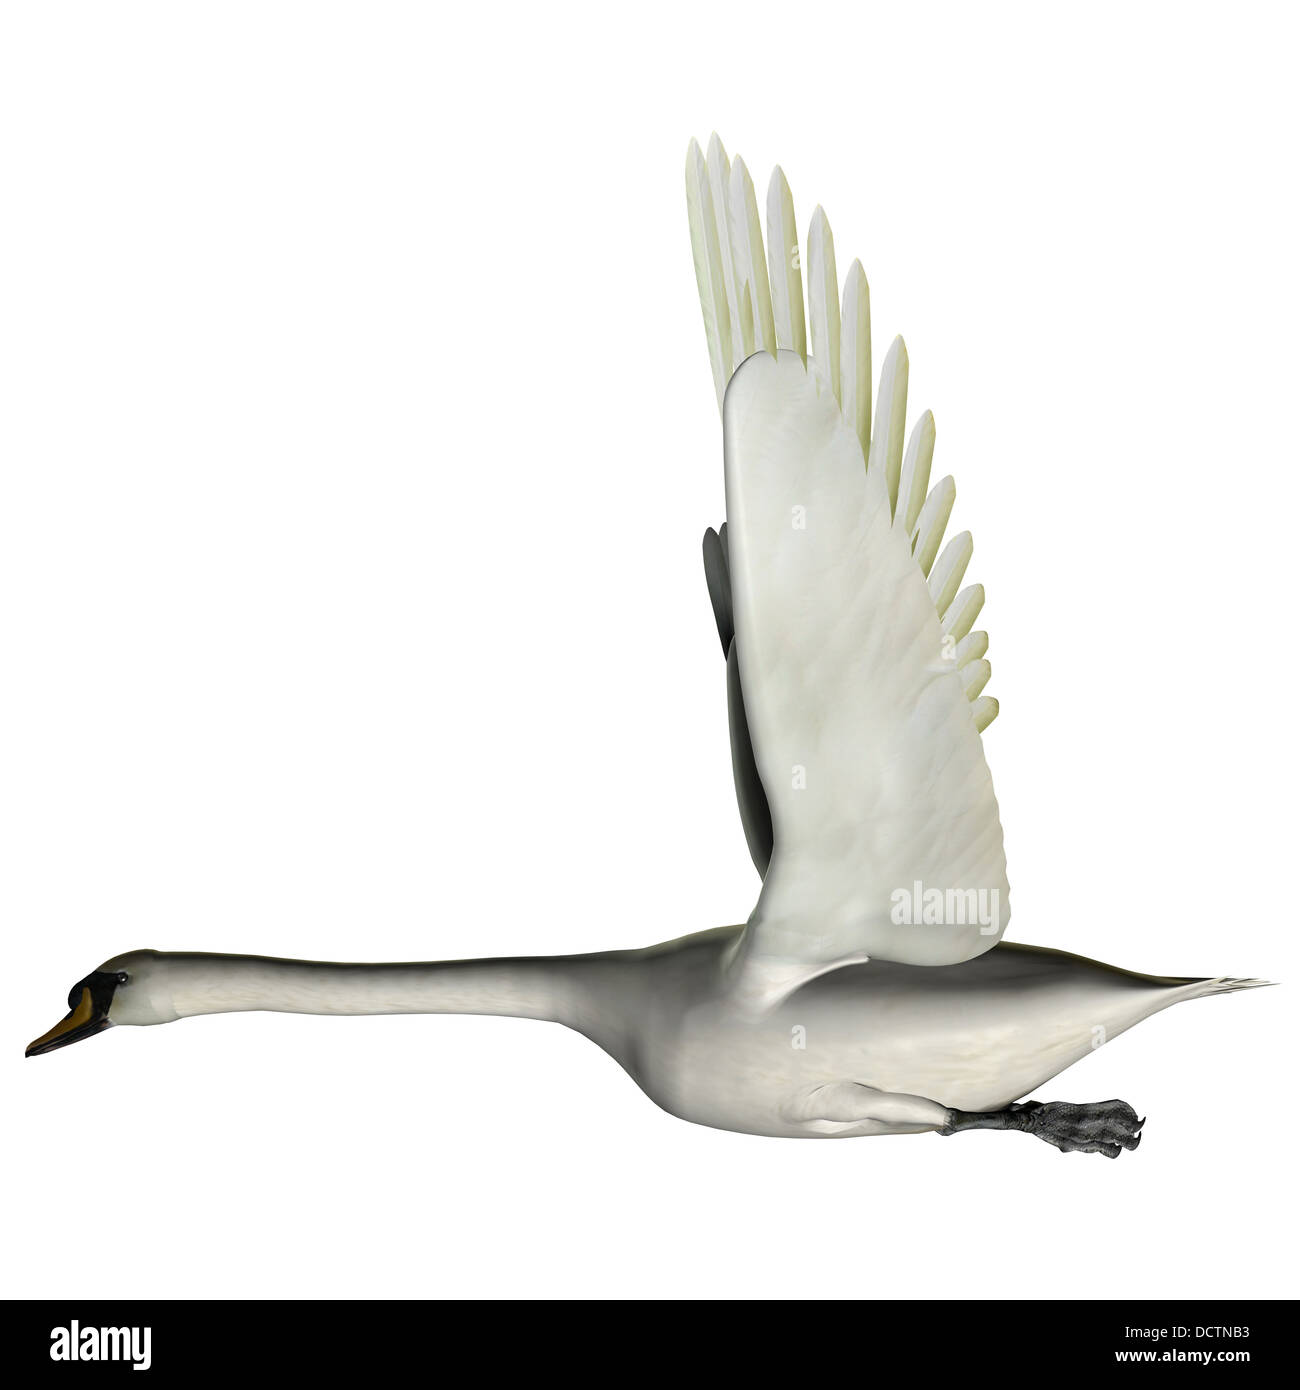 The Swan is from a genus of waterfowl and is among the largest flying birds. - Stock Image